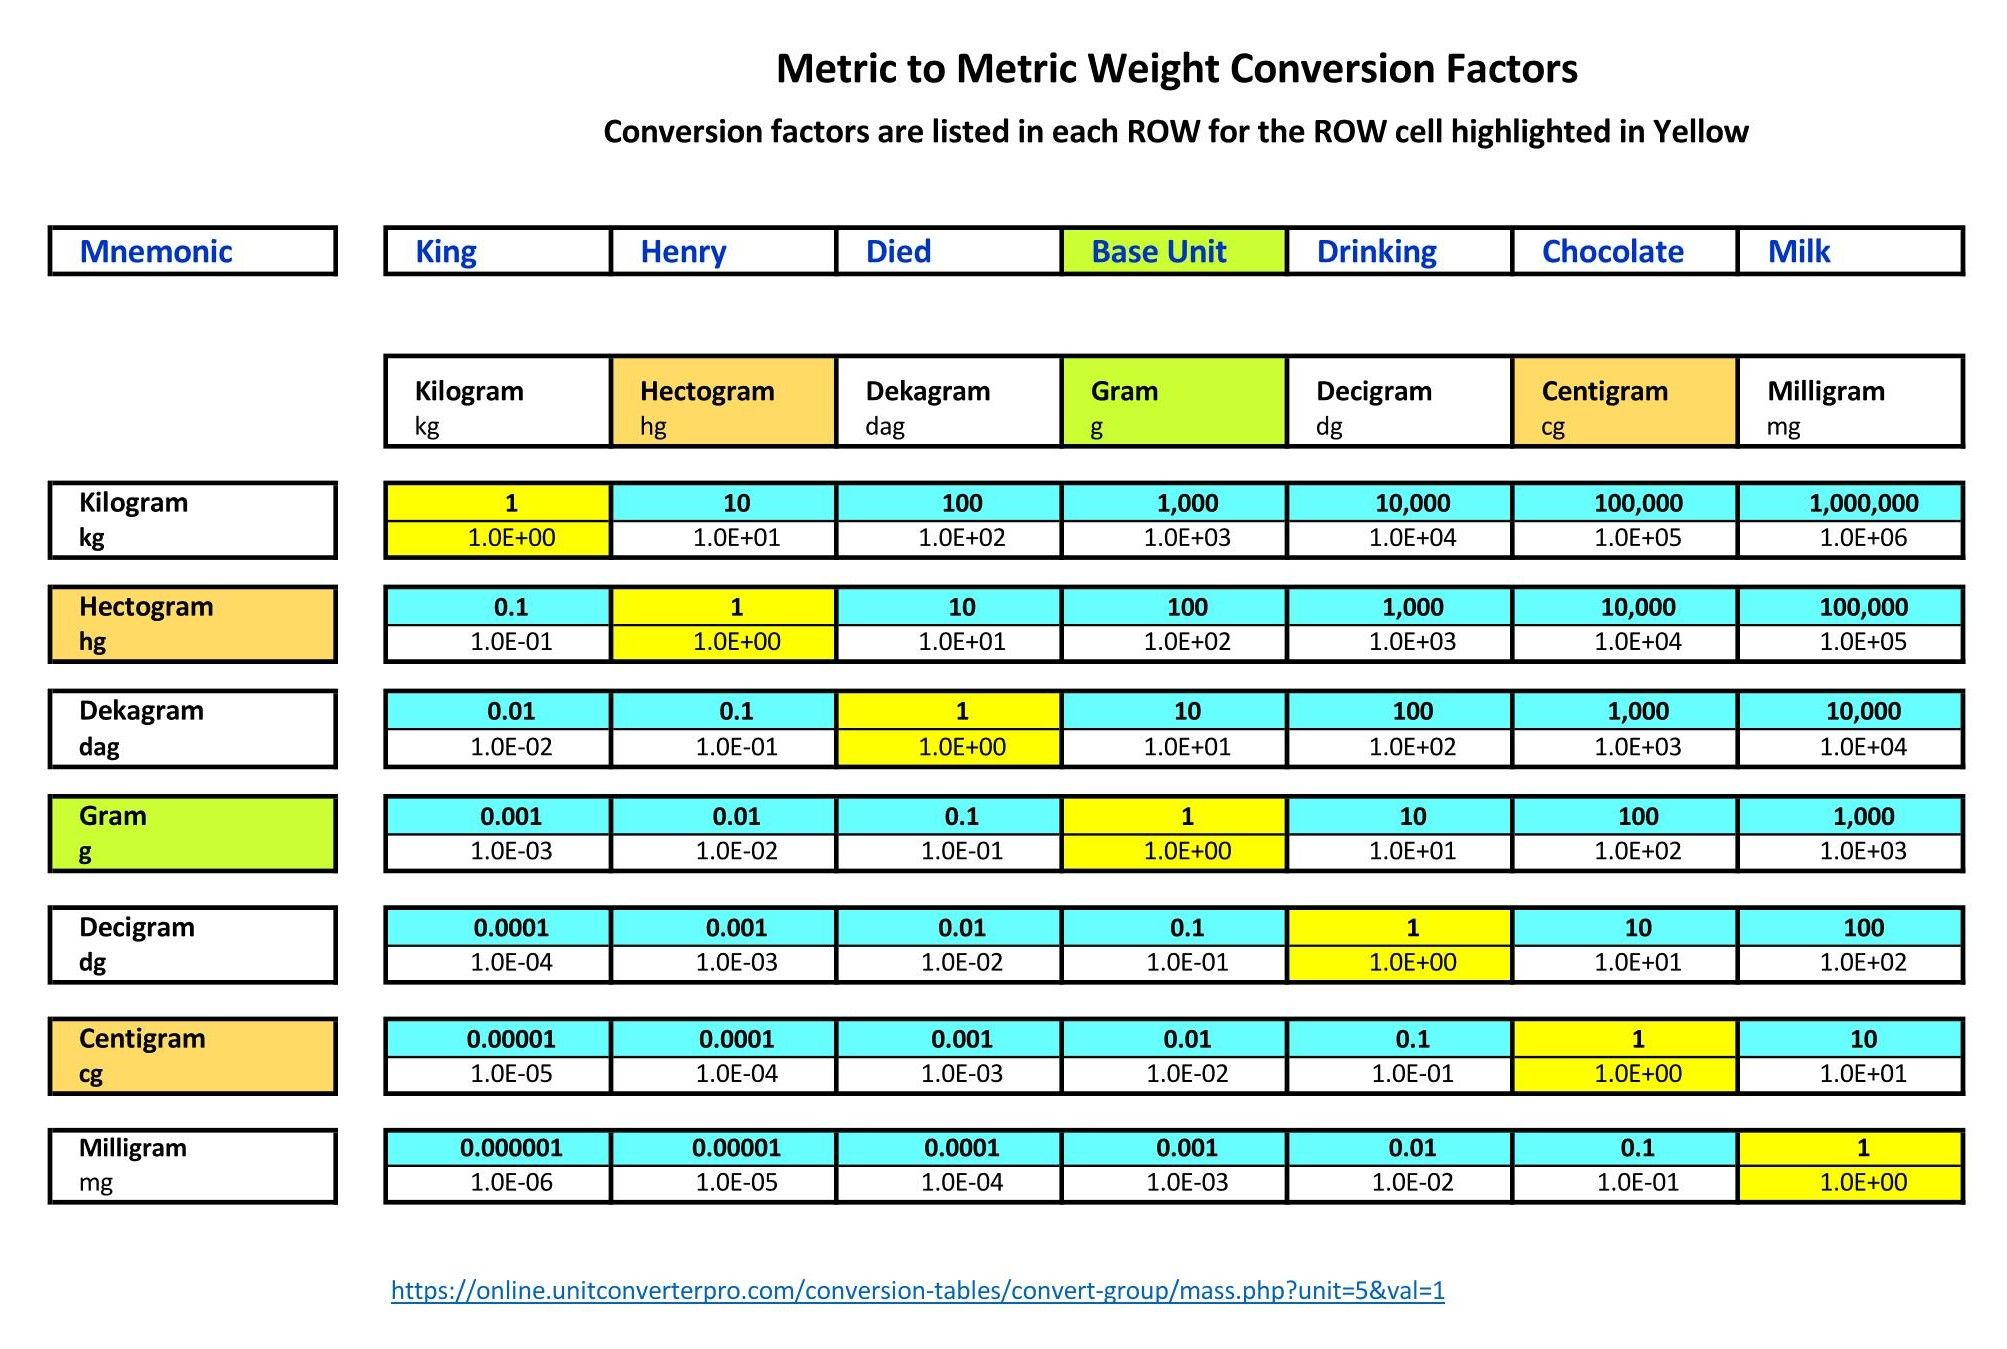 Pin On Metric To Metric Conversion Factors